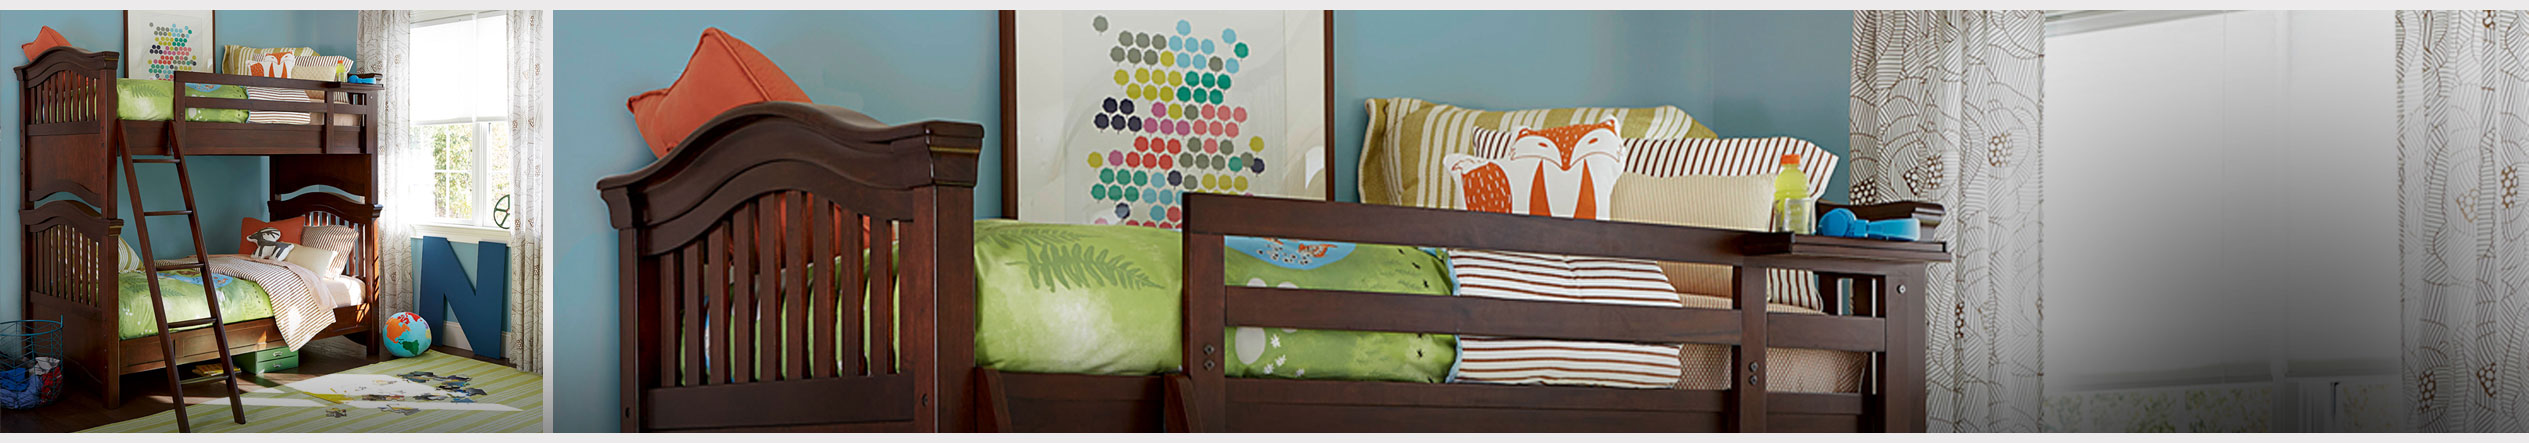 Bunk beds for sale at Jordan's Furniture in MA, NH and RI Ice House Bunk Bed Design on ice house cabinets, ice house home, ice house table, ice house furniture, ice house accessories,